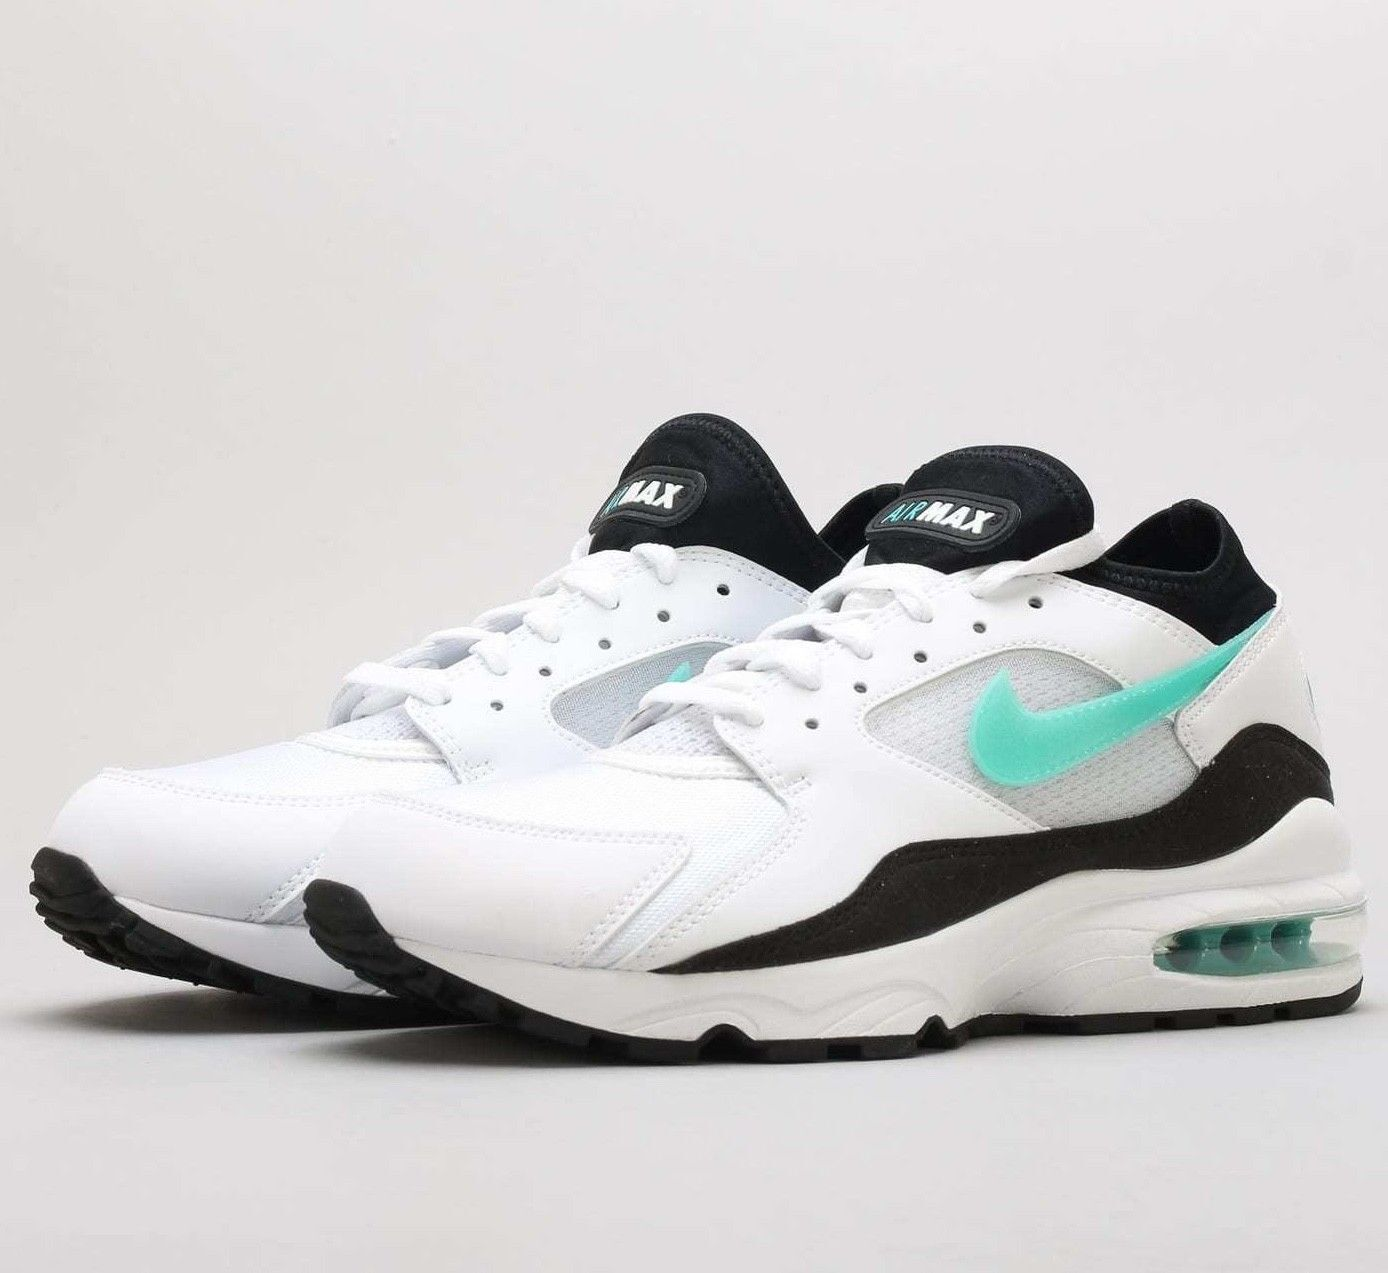 Nike Air Max 93 OG Dusty SZ Cactus  White Black  SZ Dusty 11.5  [306551-107] d4f8de